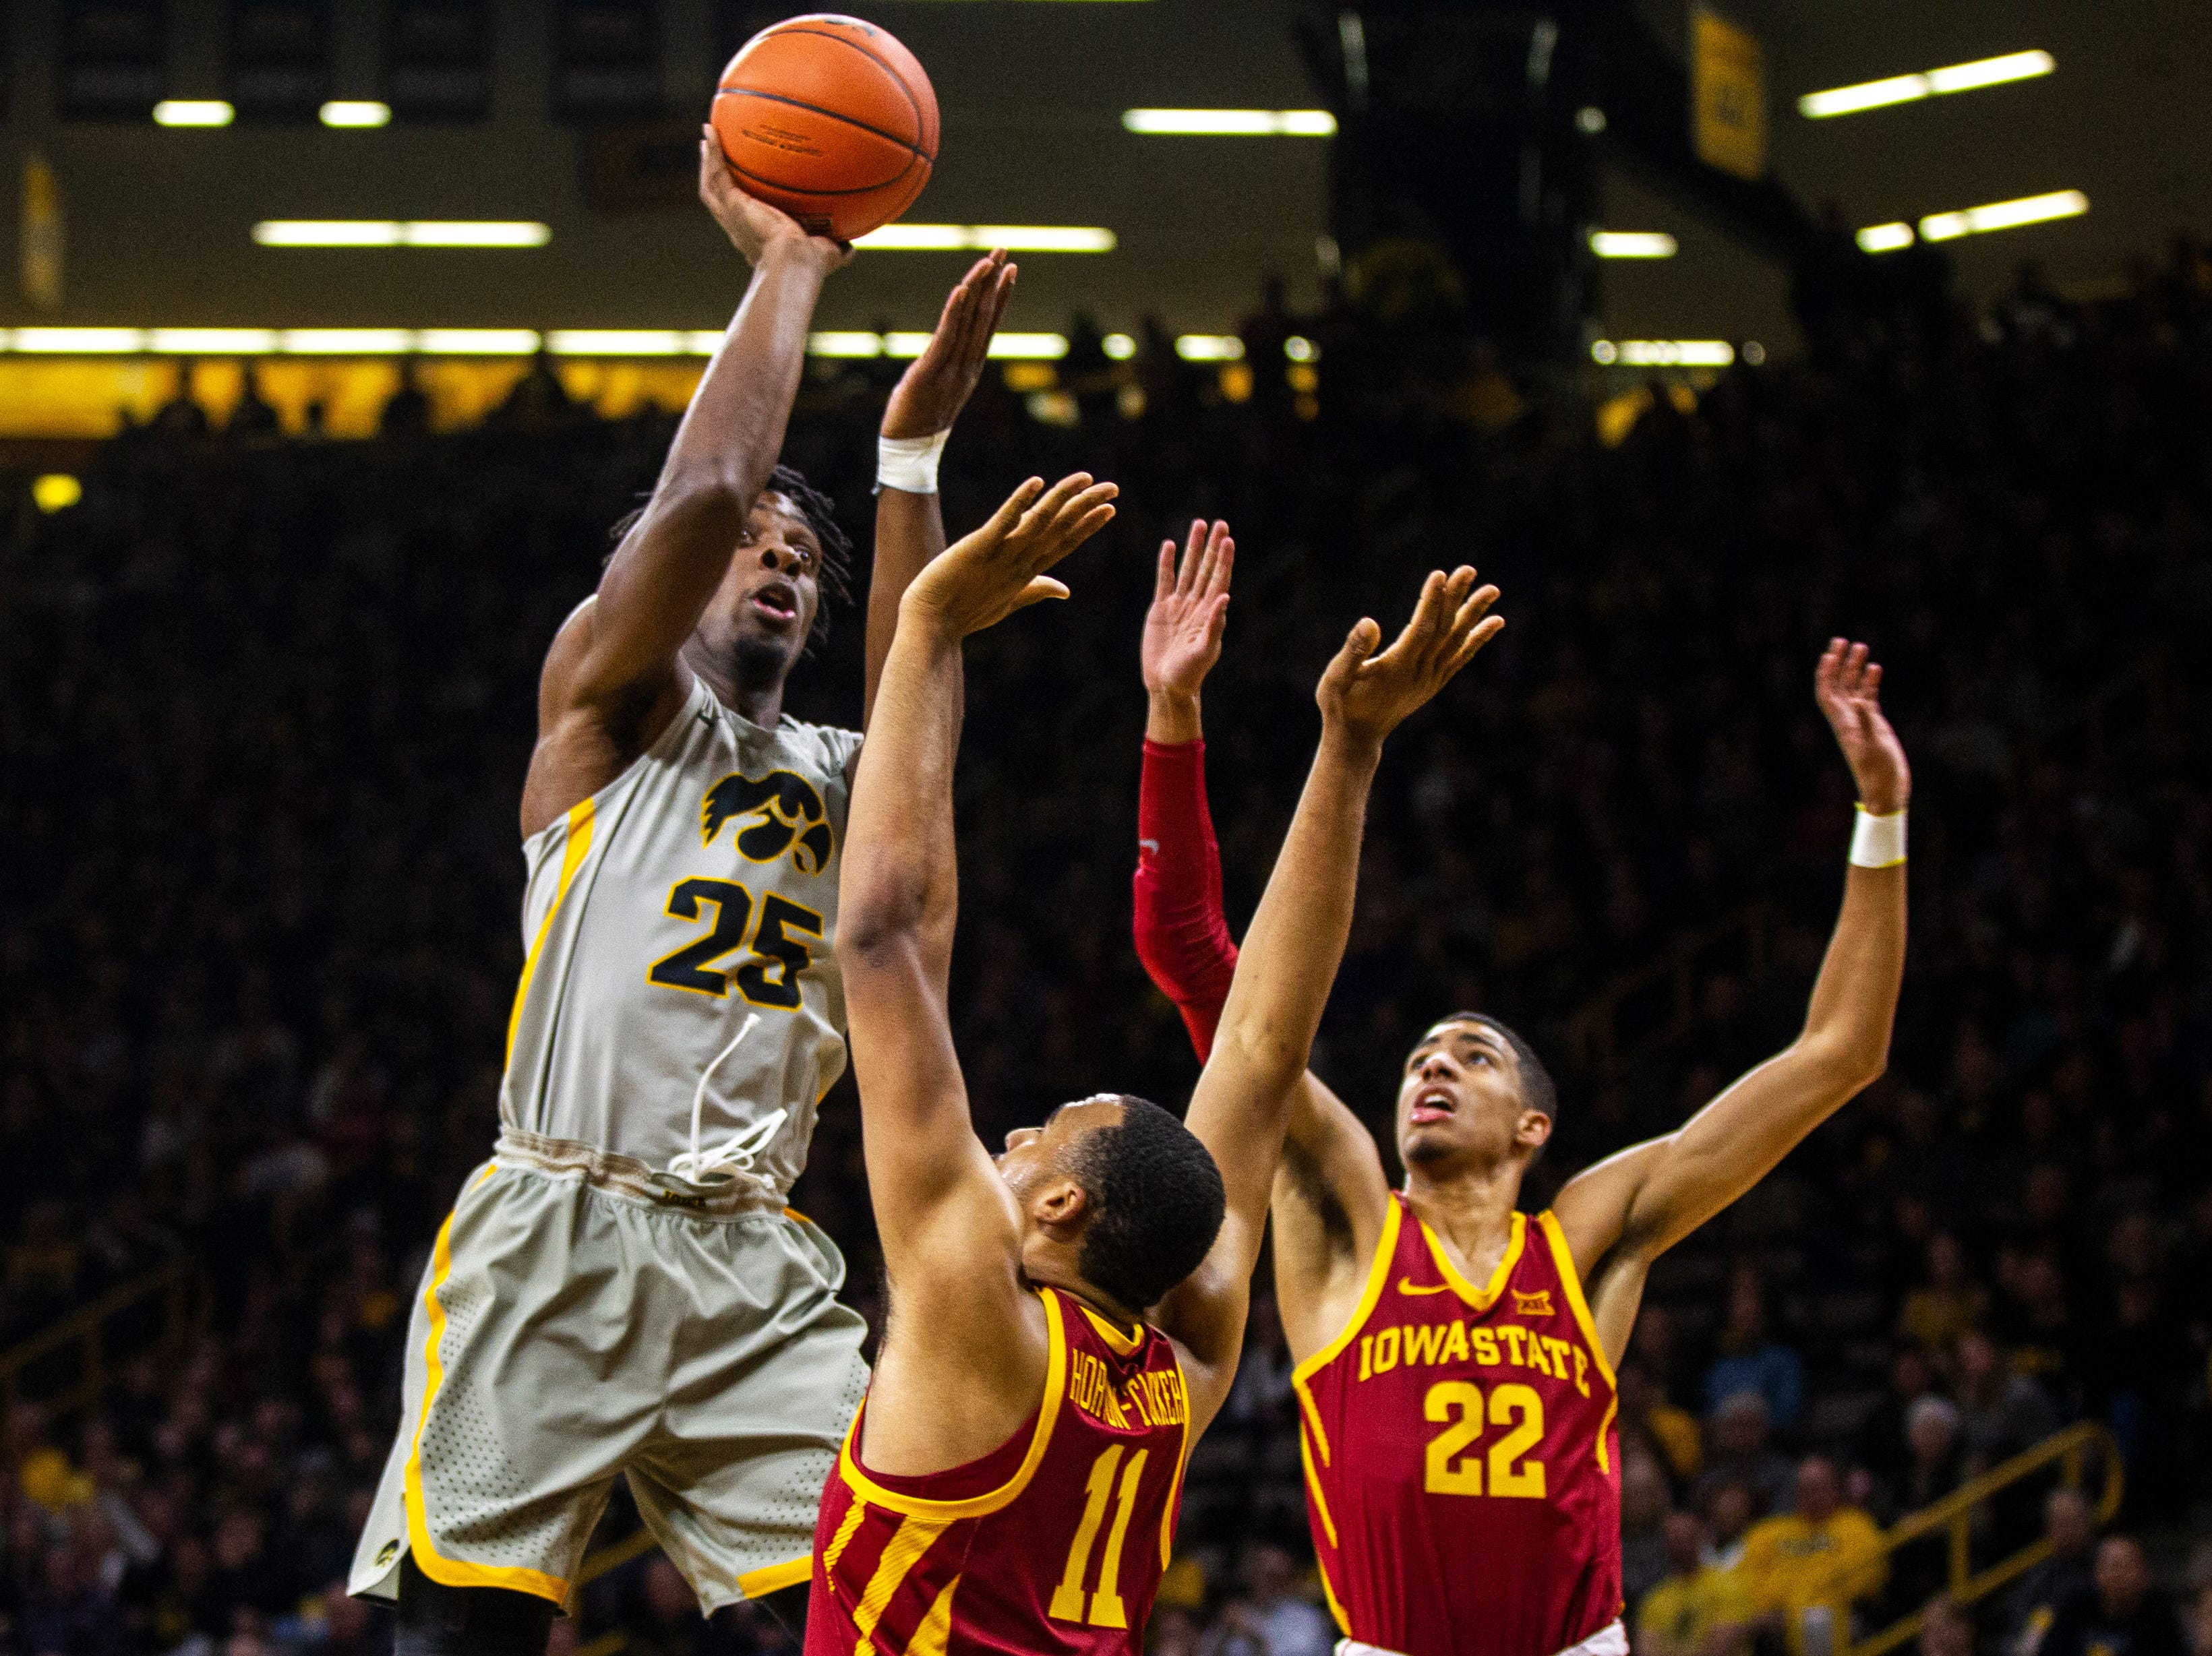 Iowa forward Tyler Cook (25) attempts a basket while being defended by Iowa State guard Talen Horton-Tucker (11) and Iowa State guard Tyrese Haliburton (22) during a NCAA Cy-Hawk series men's basketball game on Thursday, Dec. 6, 2018, at Carver-Hawkeye Arena in Iowa City.